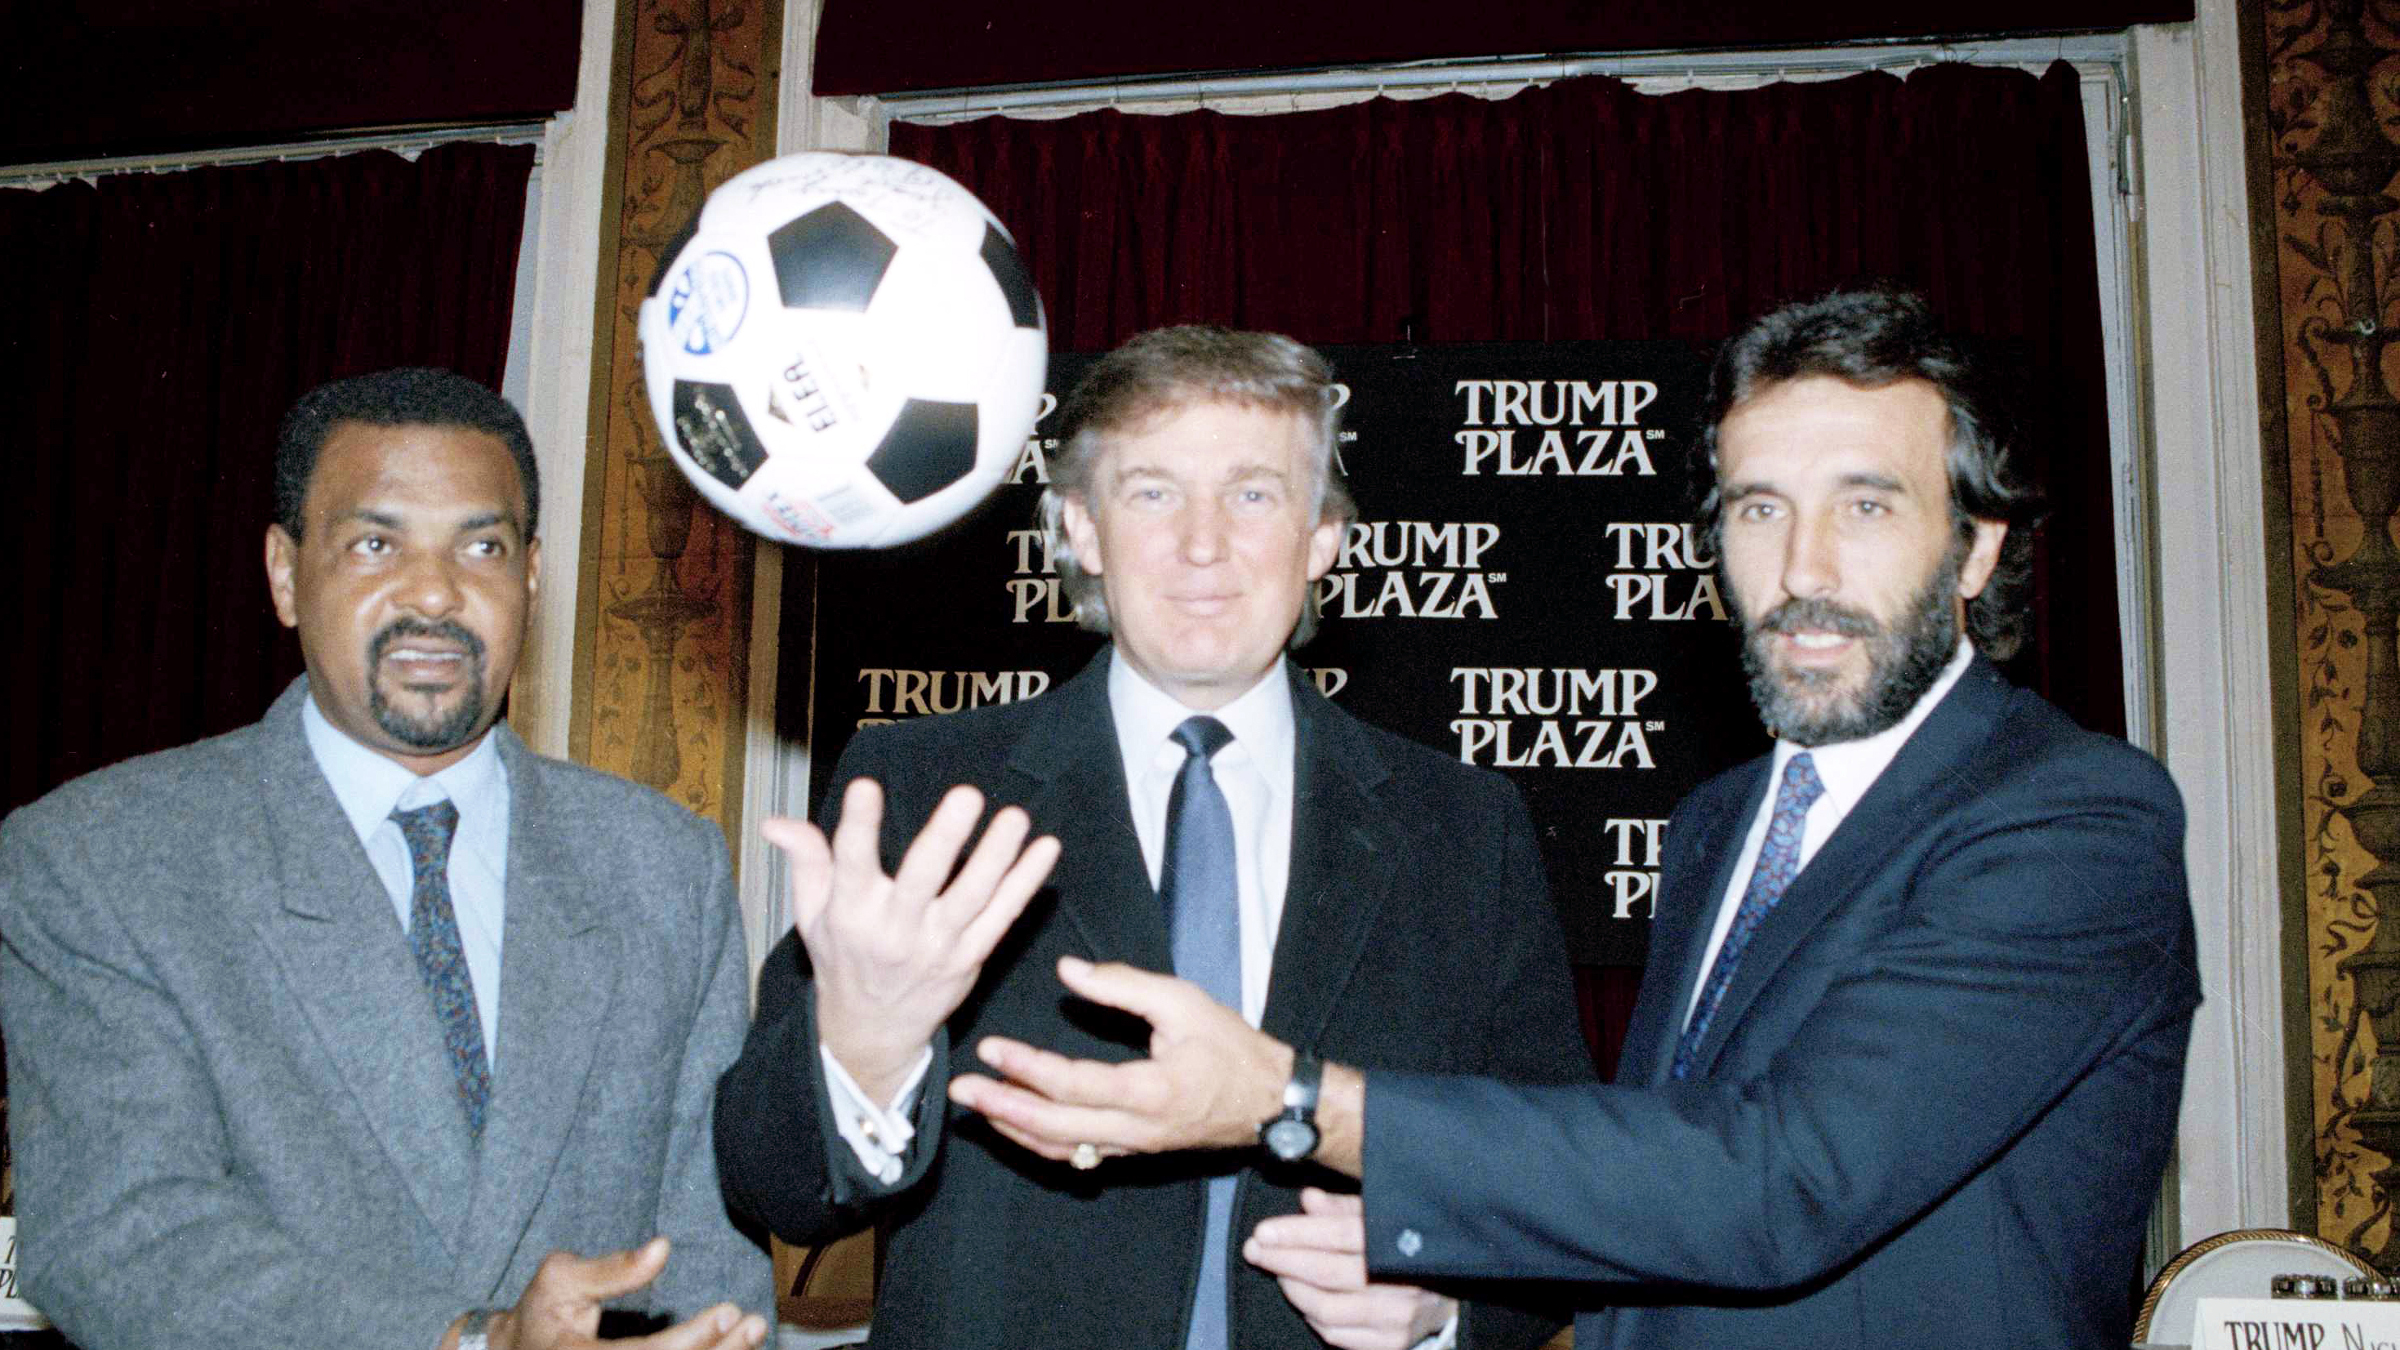 Real estate magnate Donald Trump is flanked by soccer players Luis Pereira, left, of Brazil, and Julio Villa of Argentina, during a news conference in New York, Jan. 29, 1992. Argentina and Brazil will meet in an exhibition Futbol 5 match at Trump Plaza Hotel and Casino in Atlantic City, N.J., March 28, 1992.